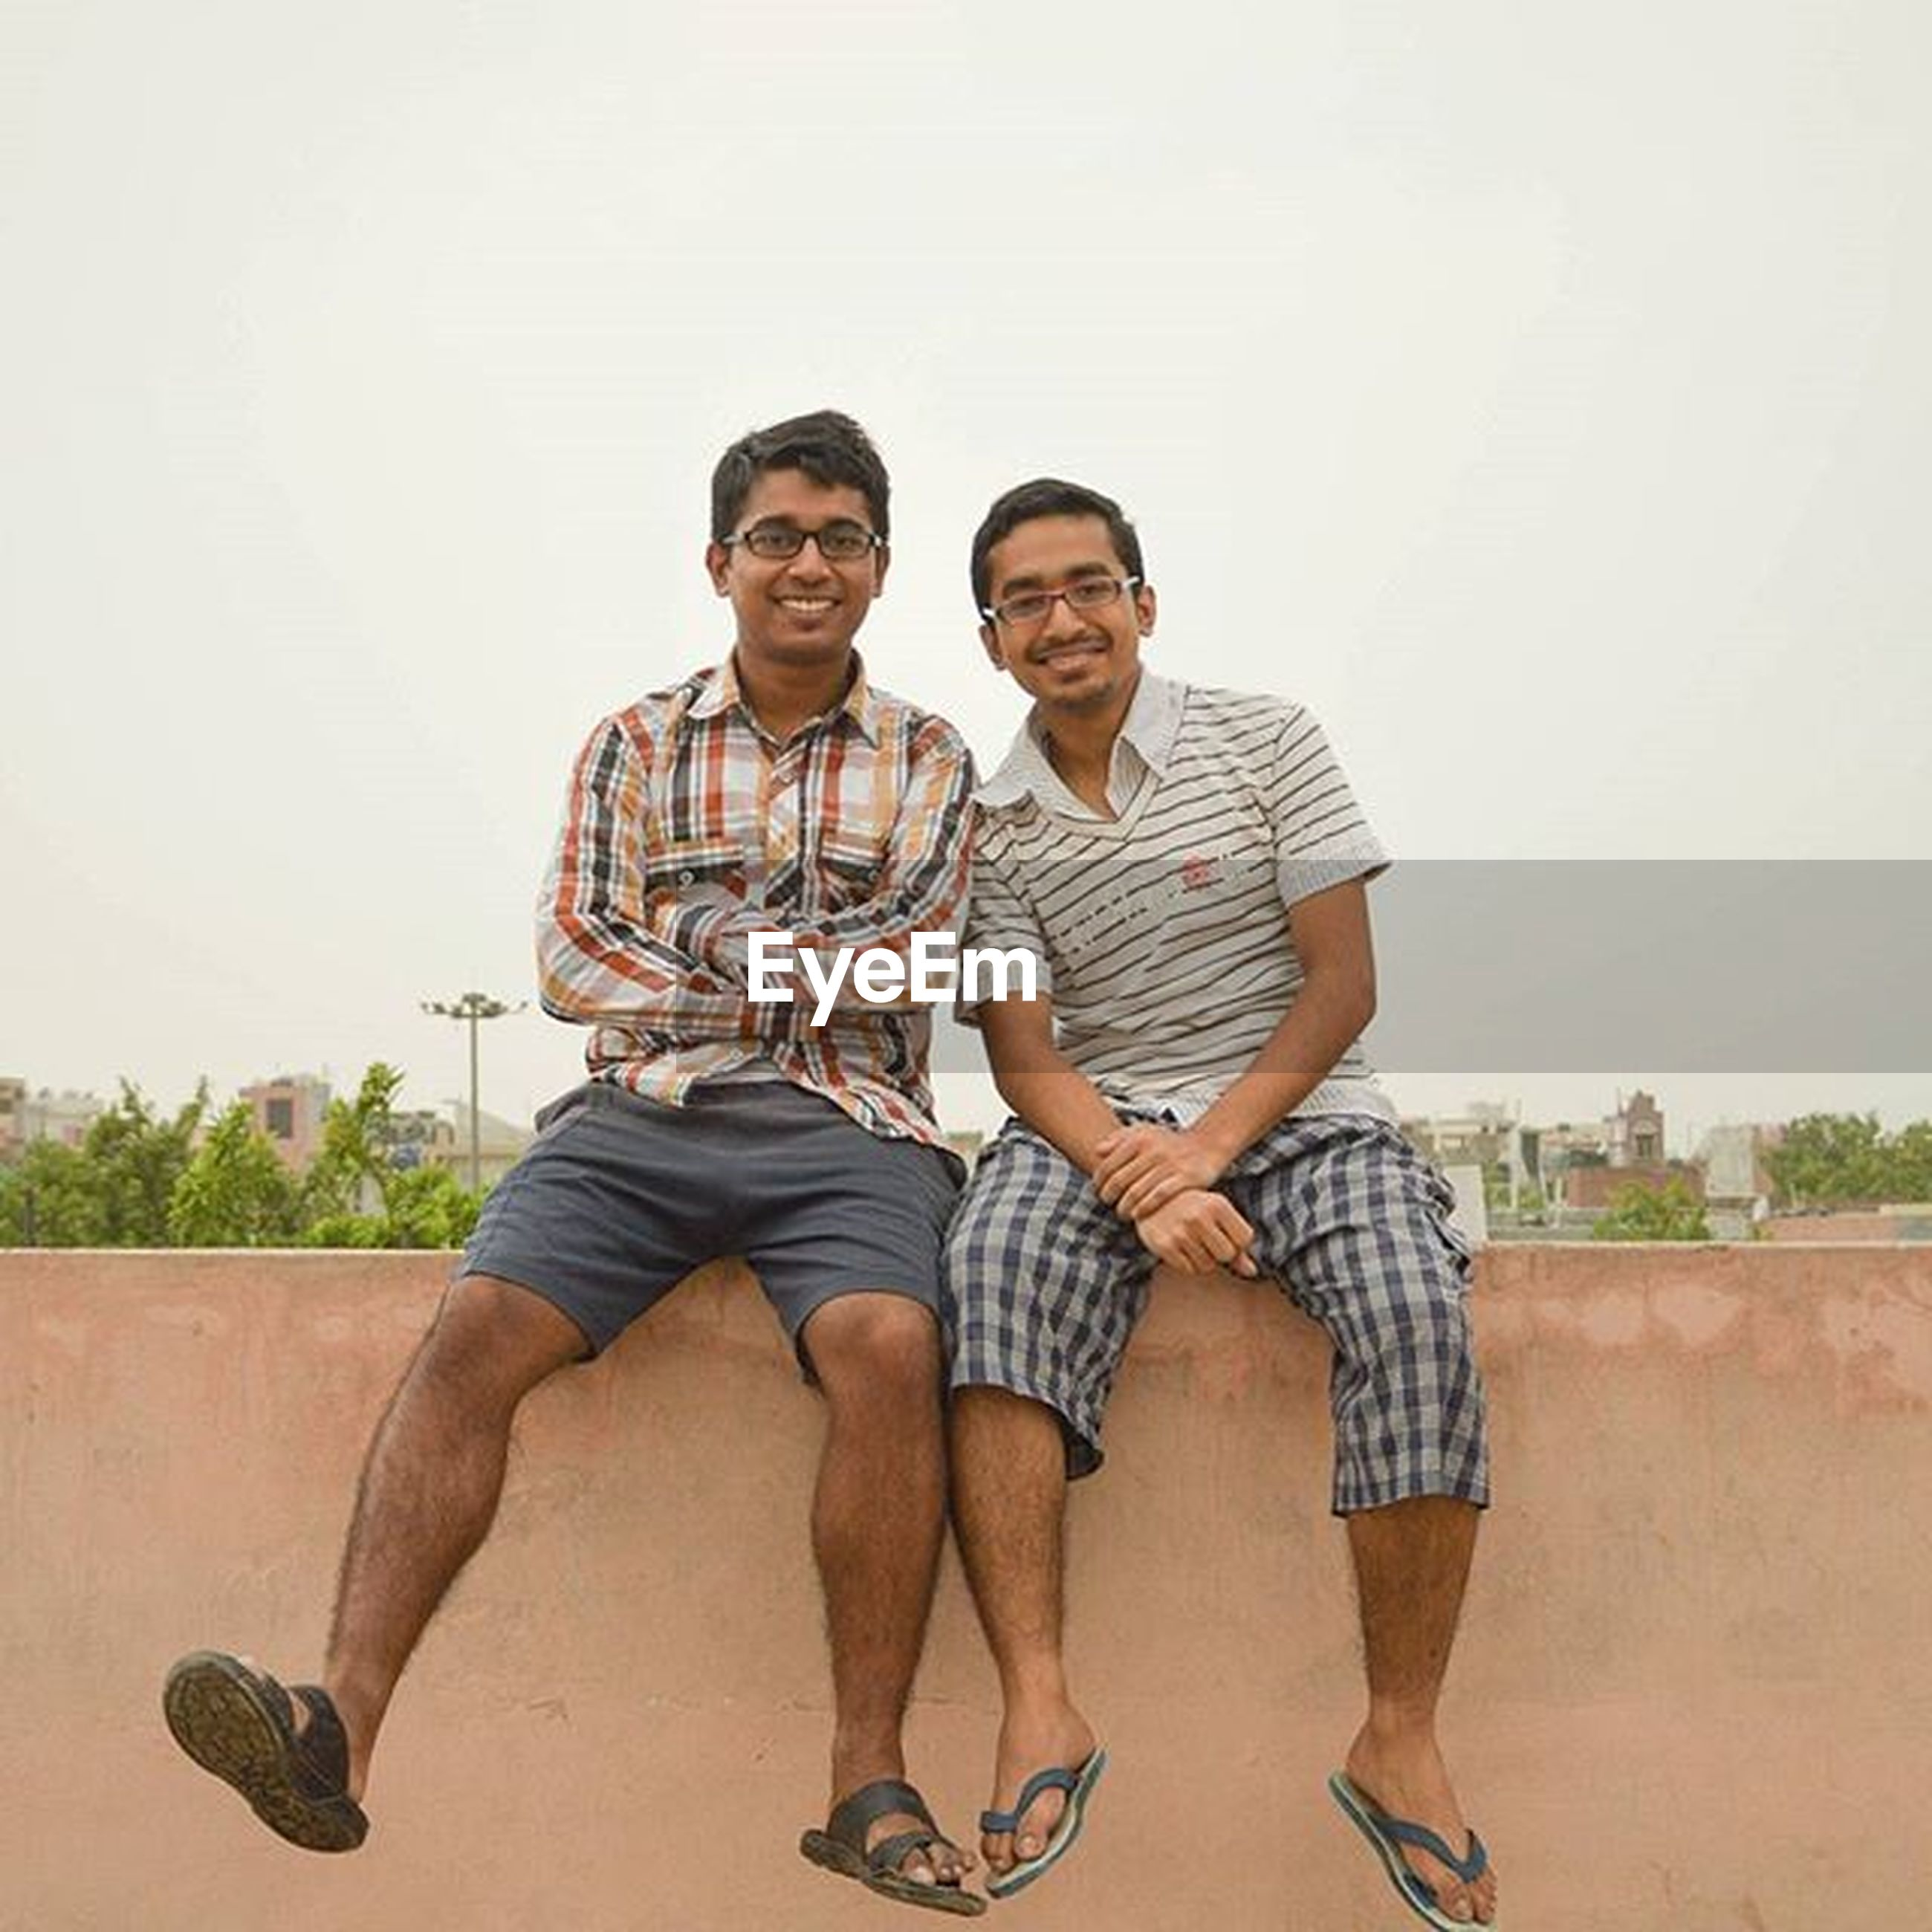 lifestyles, casual clothing, togetherness, leisure activity, full length, young adult, bonding, standing, person, front view, young men, friendship, sitting, love, happiness, looking at camera